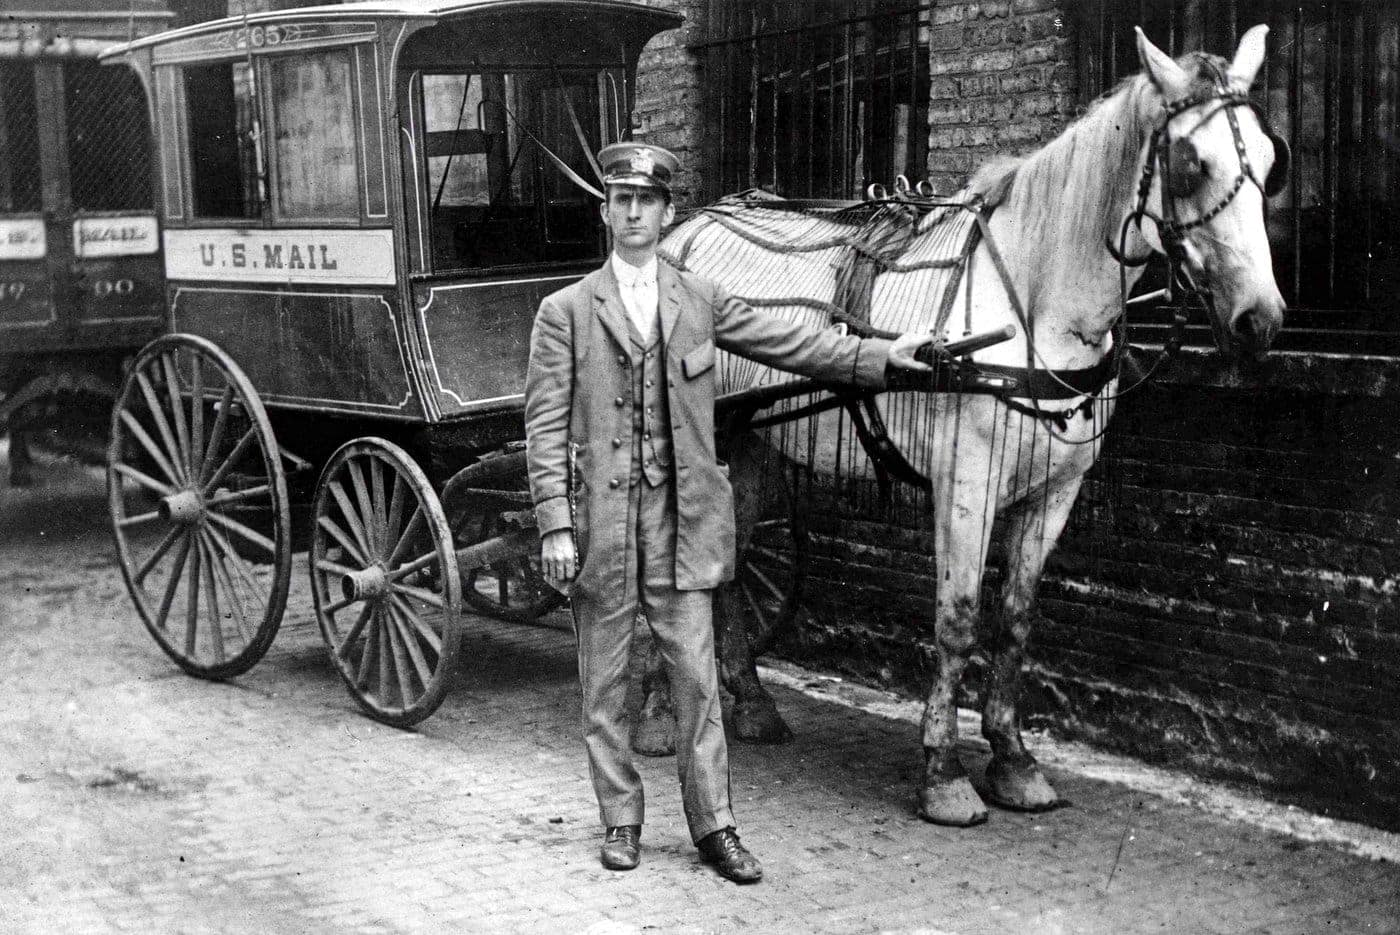 City Collection Wagon Chicago 1890 - Postal service